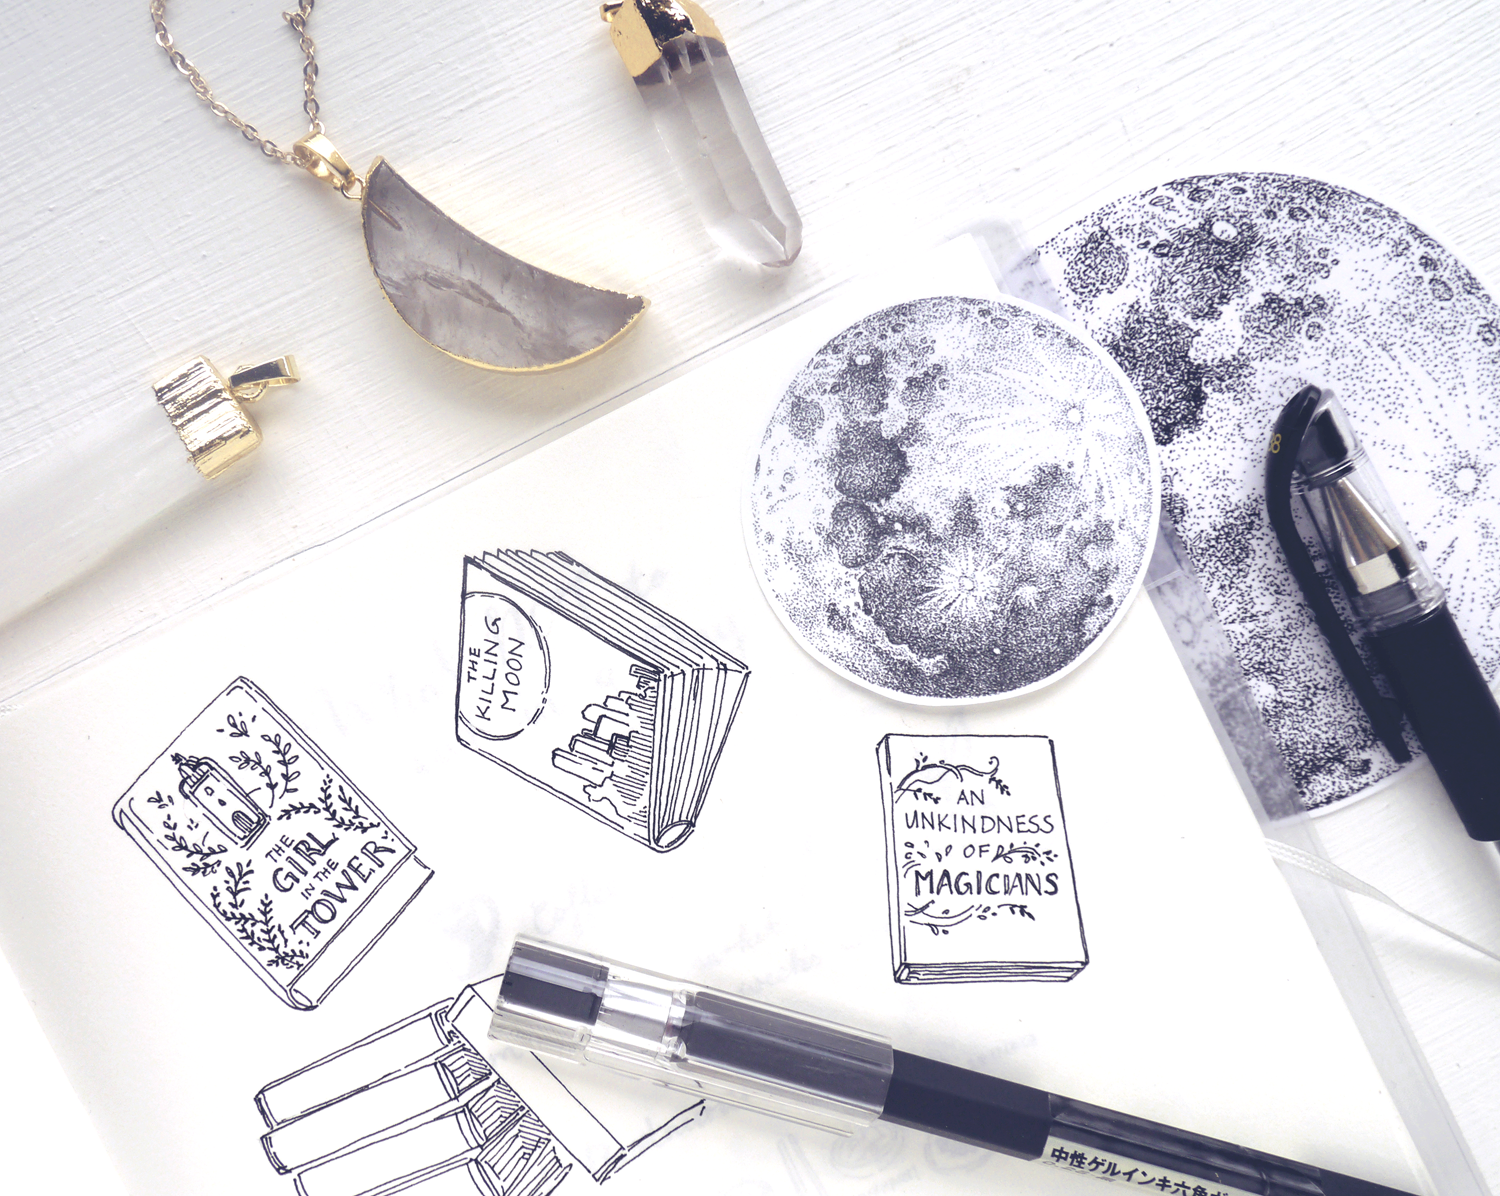 Book Doodle Art in my Midori Bullet Journal: This year with more tiny details, miniature book cover drawings, and lots of book recommendations! Get a better look at my bullet journal yearly collections, creative journaling ideas, and art materials in review on my blog~